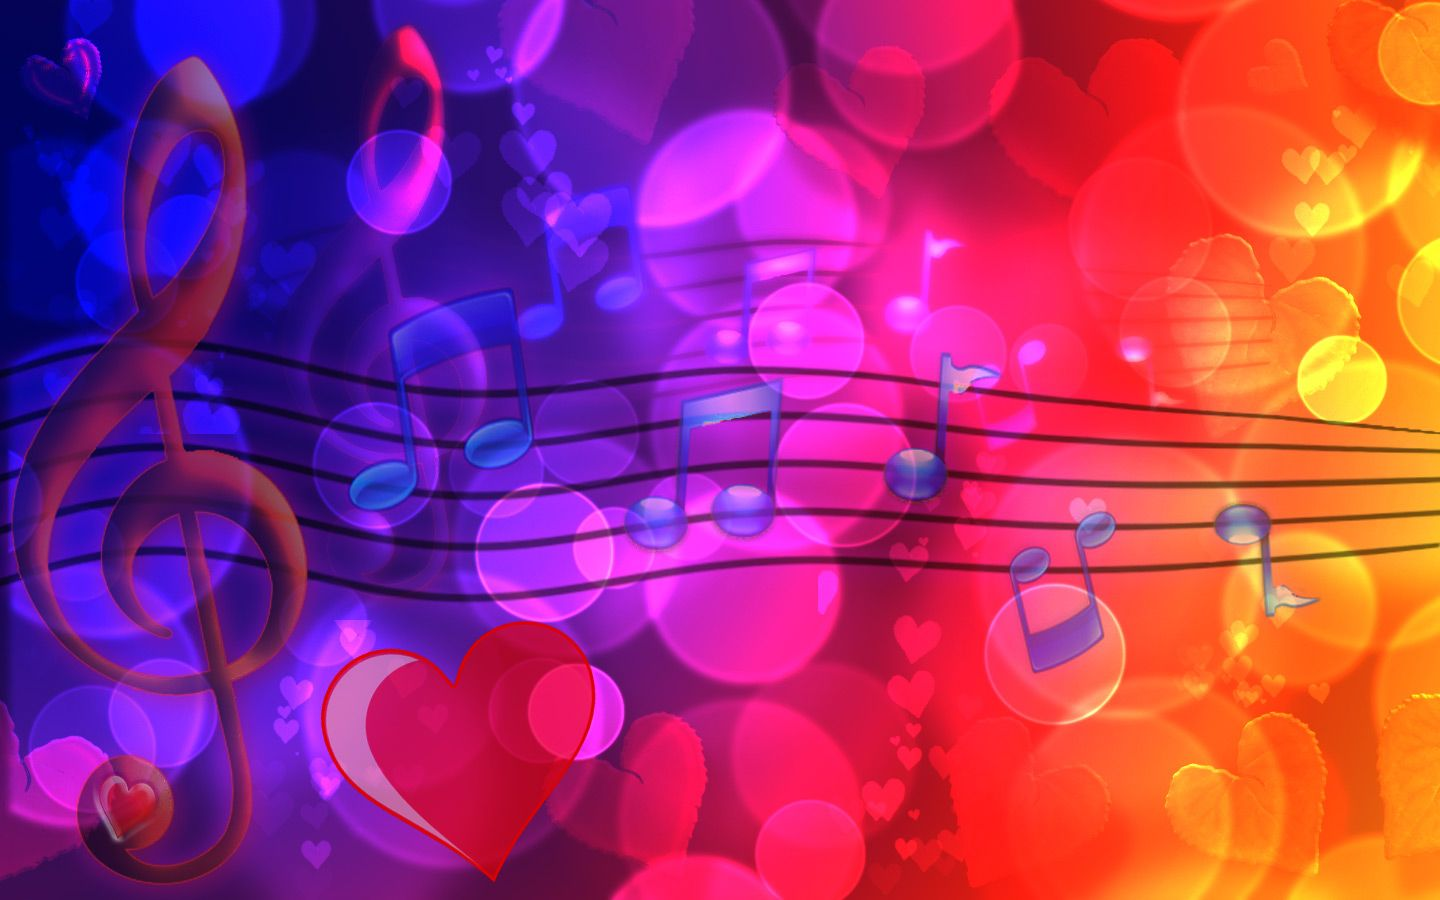 Colorful Music Notes 3d Wallpaper 8402 Frenzia Com Rainbow Music Music Notes Music Waves